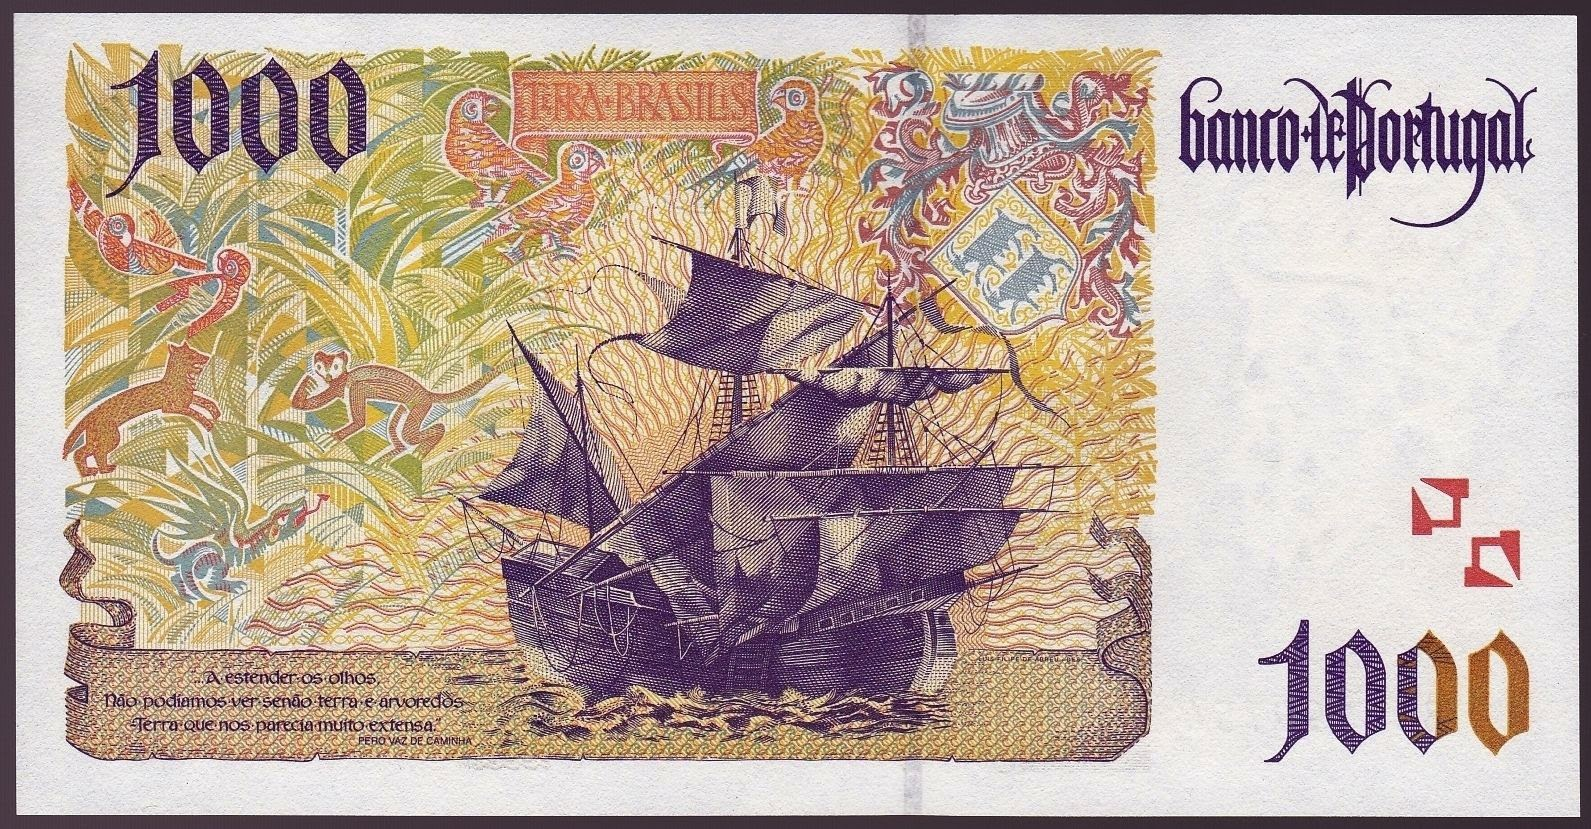 Portugal money currency 1000 Escudos banknote 2000 Portuguese Caravel